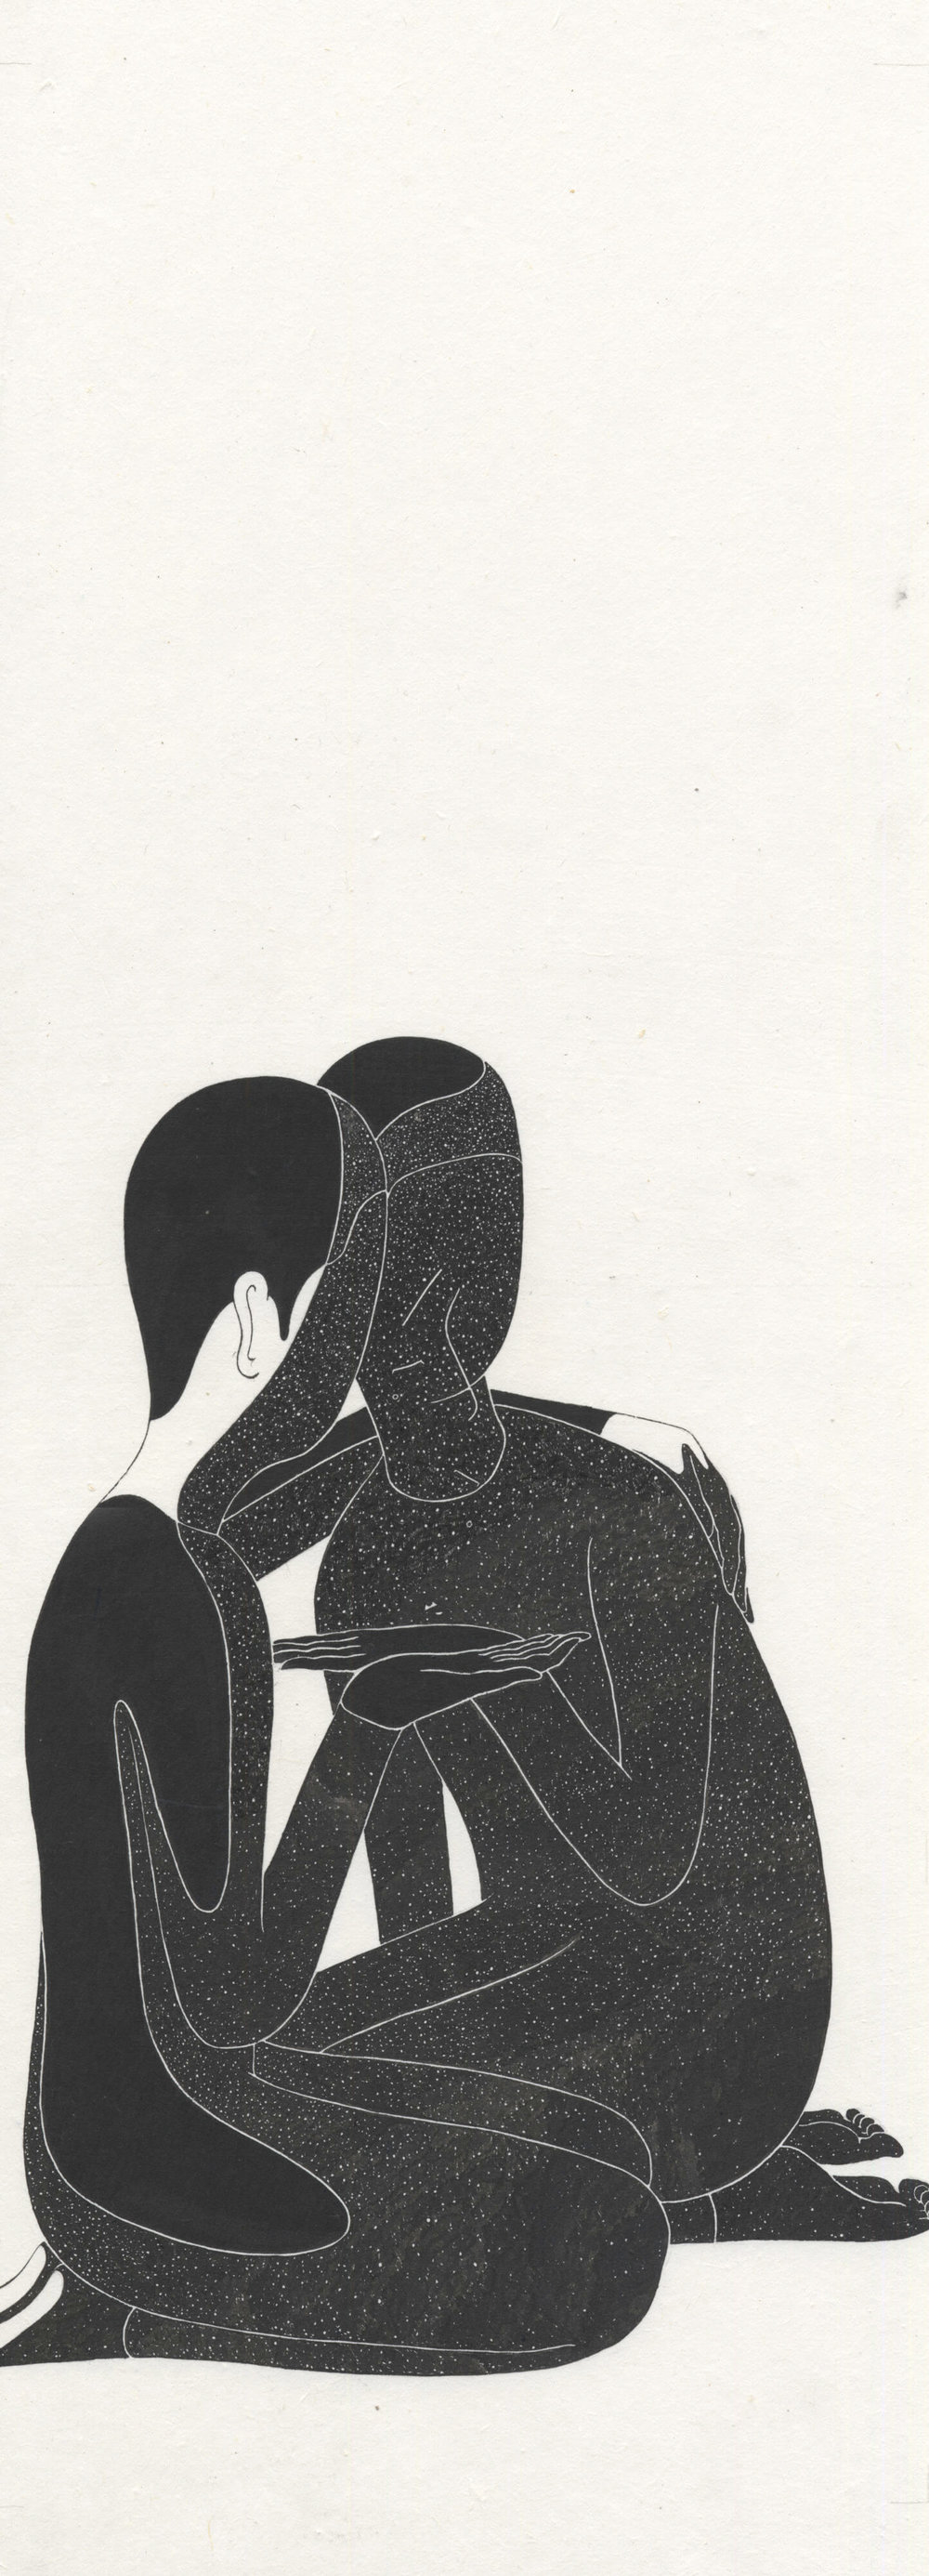 Sharing Face with Me in The Shadow   (2015)  Ink on Korean Paper 26 x 69 cm   Daehyun Kim